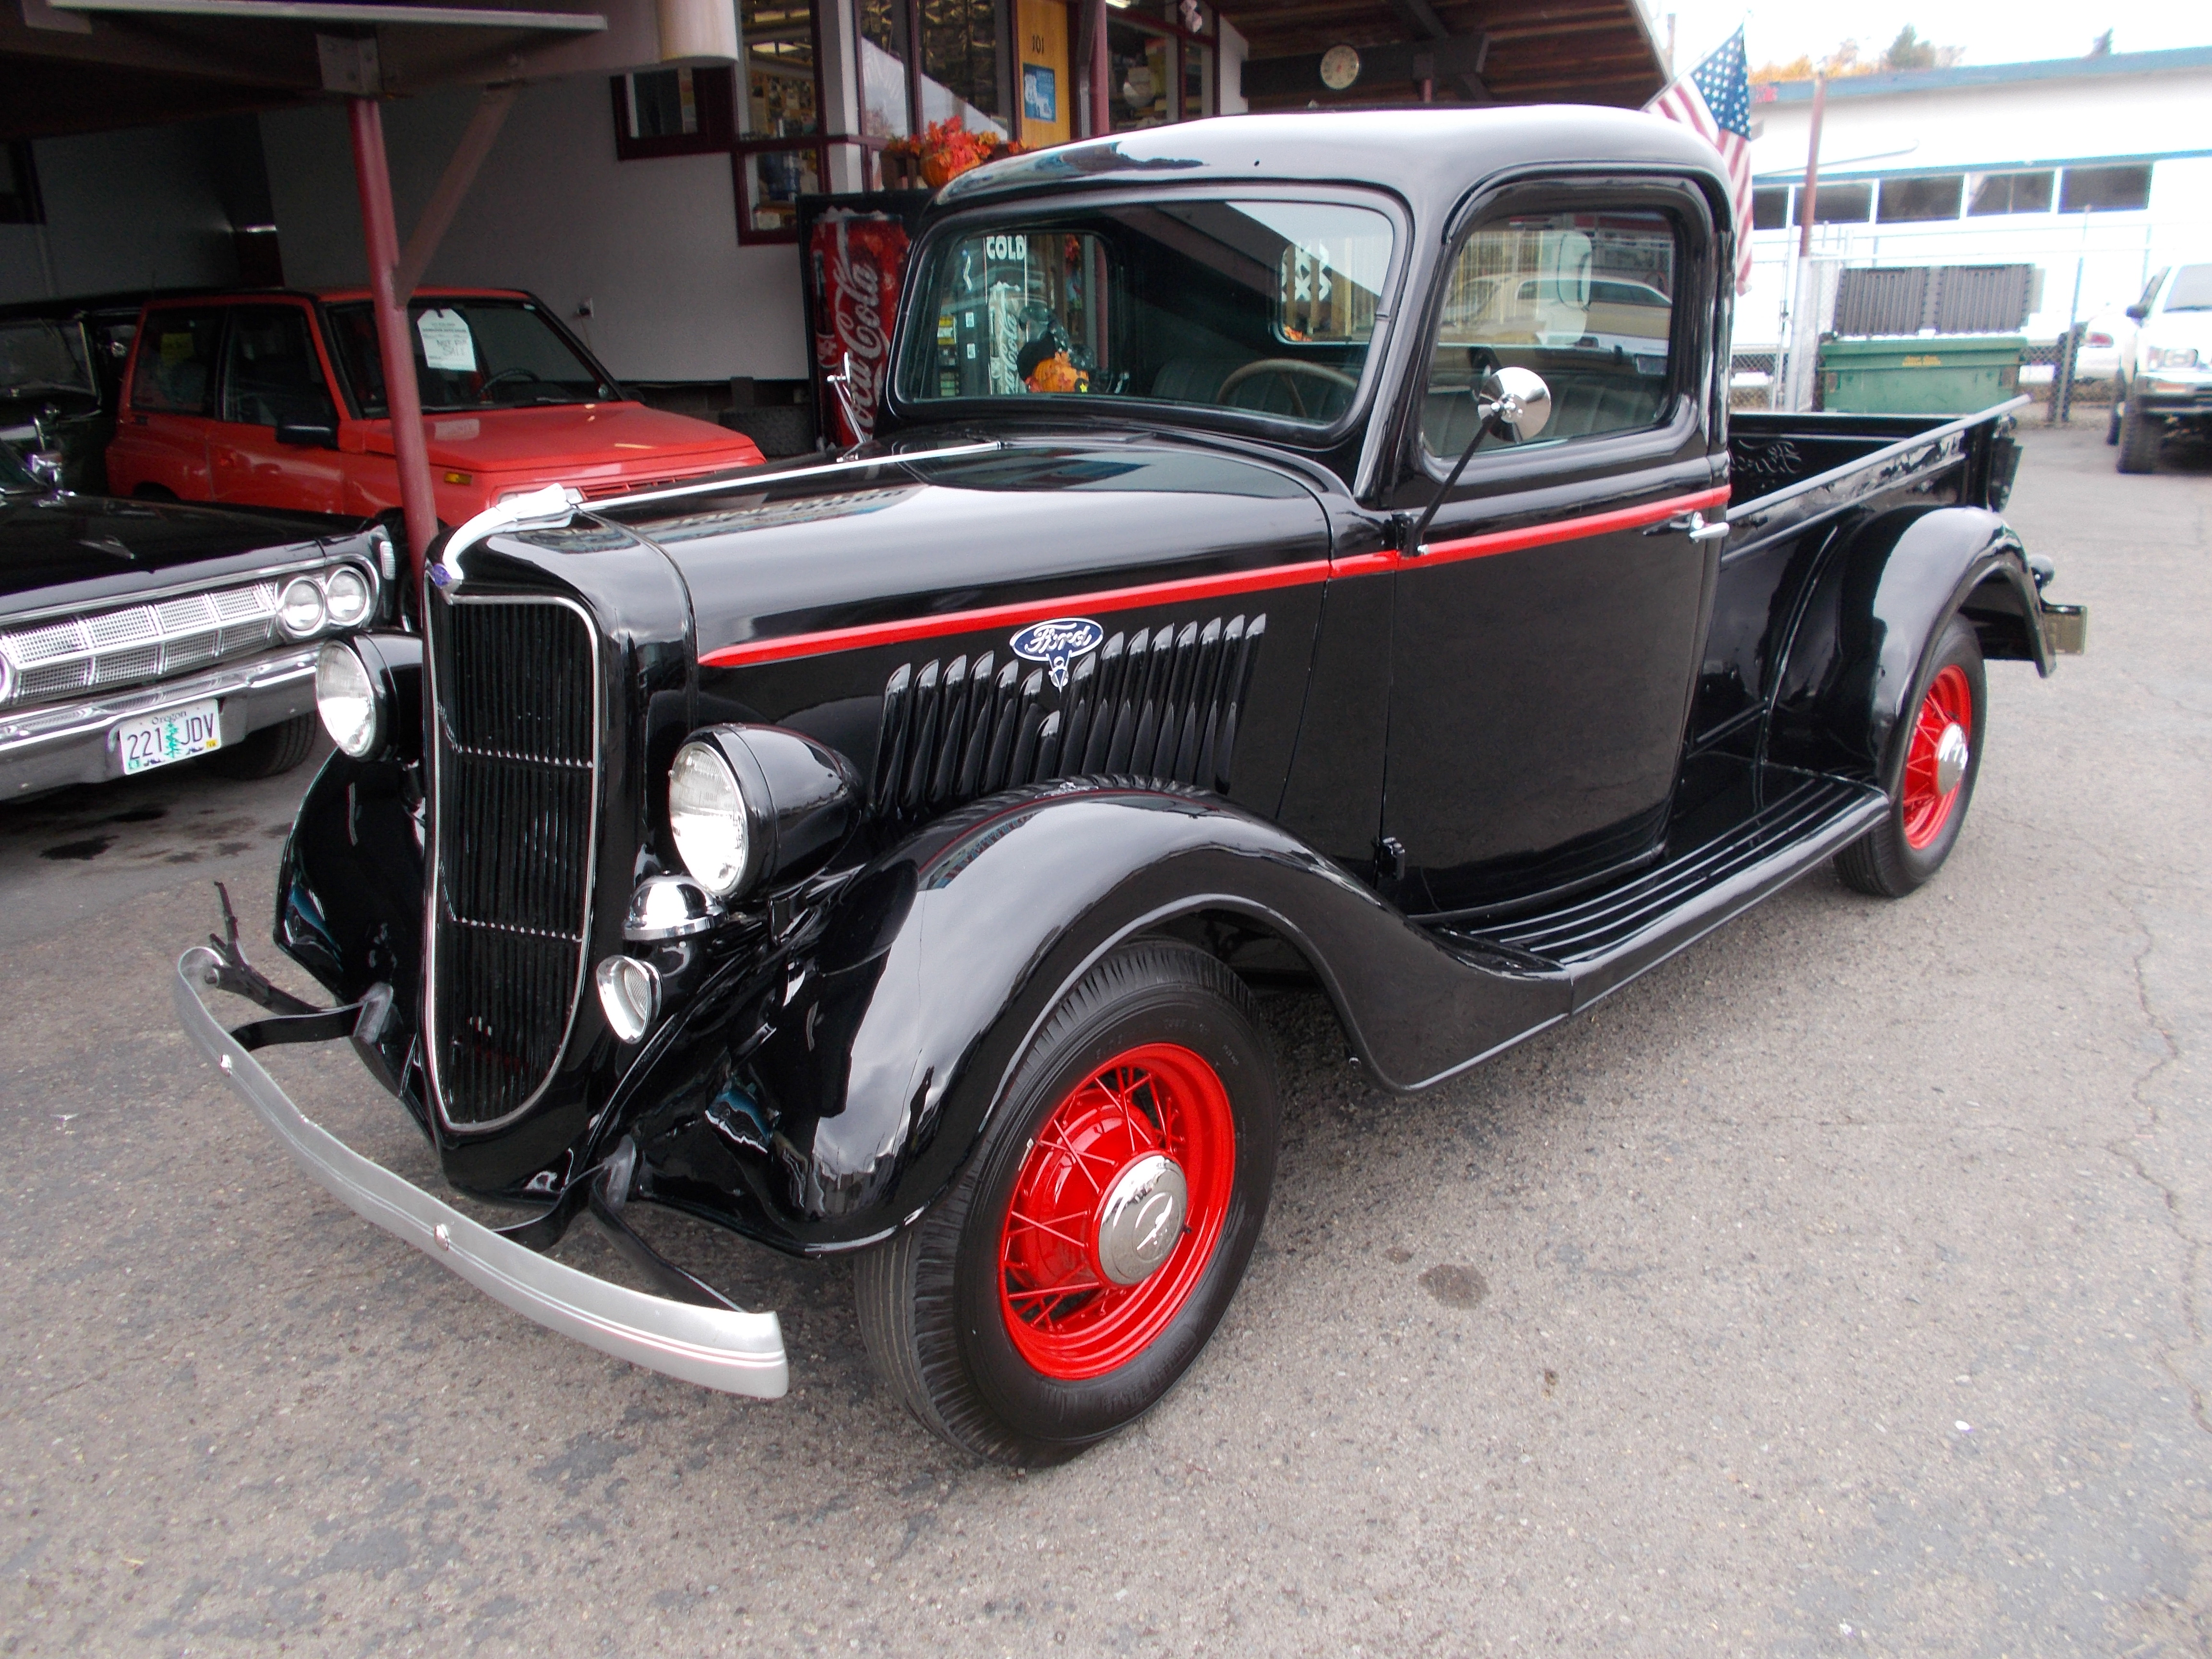 Hamilton Auto Sales 1941 Ford Panel Delivery Truck 1935 Pickup Restored All Stock Nice Flat Head V 8 Rebuilt 3spd Transmission The Owner It Trying To Keep As Close Original